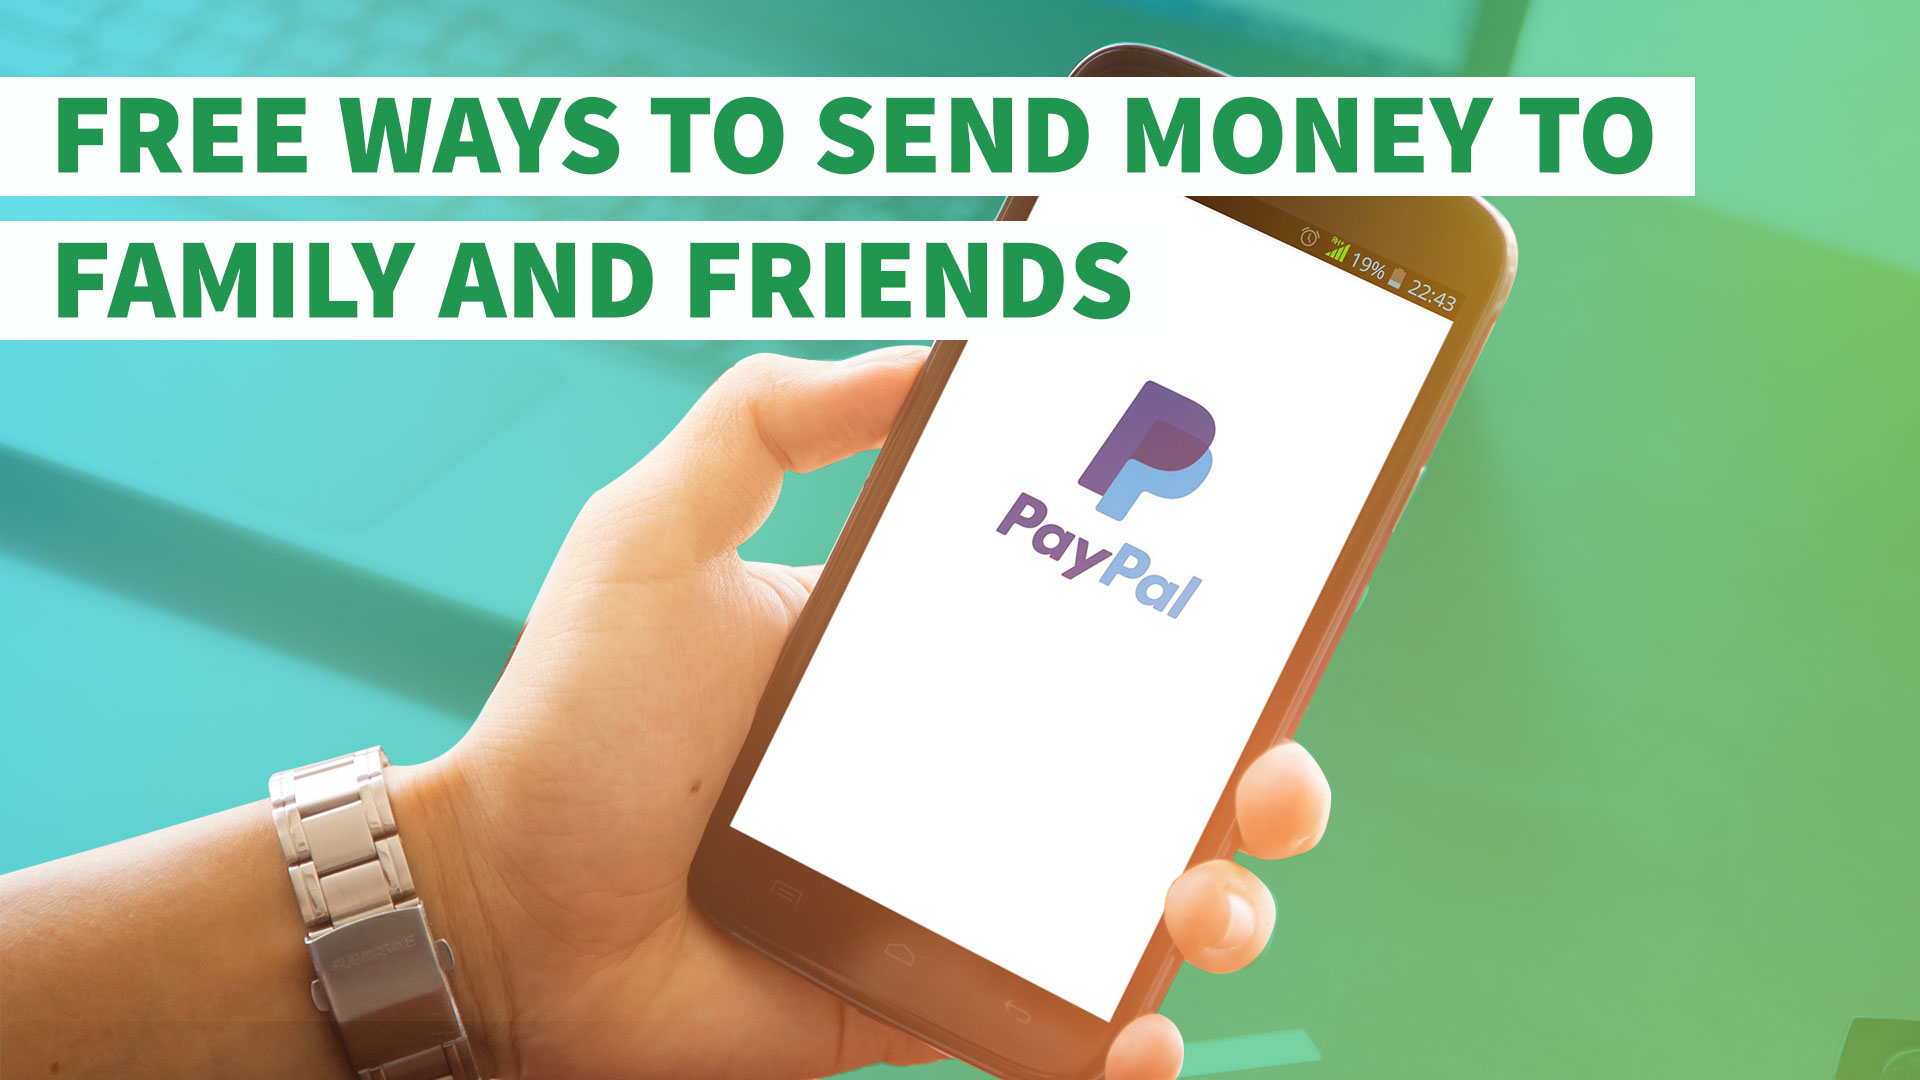 Send Money To Family And Friends